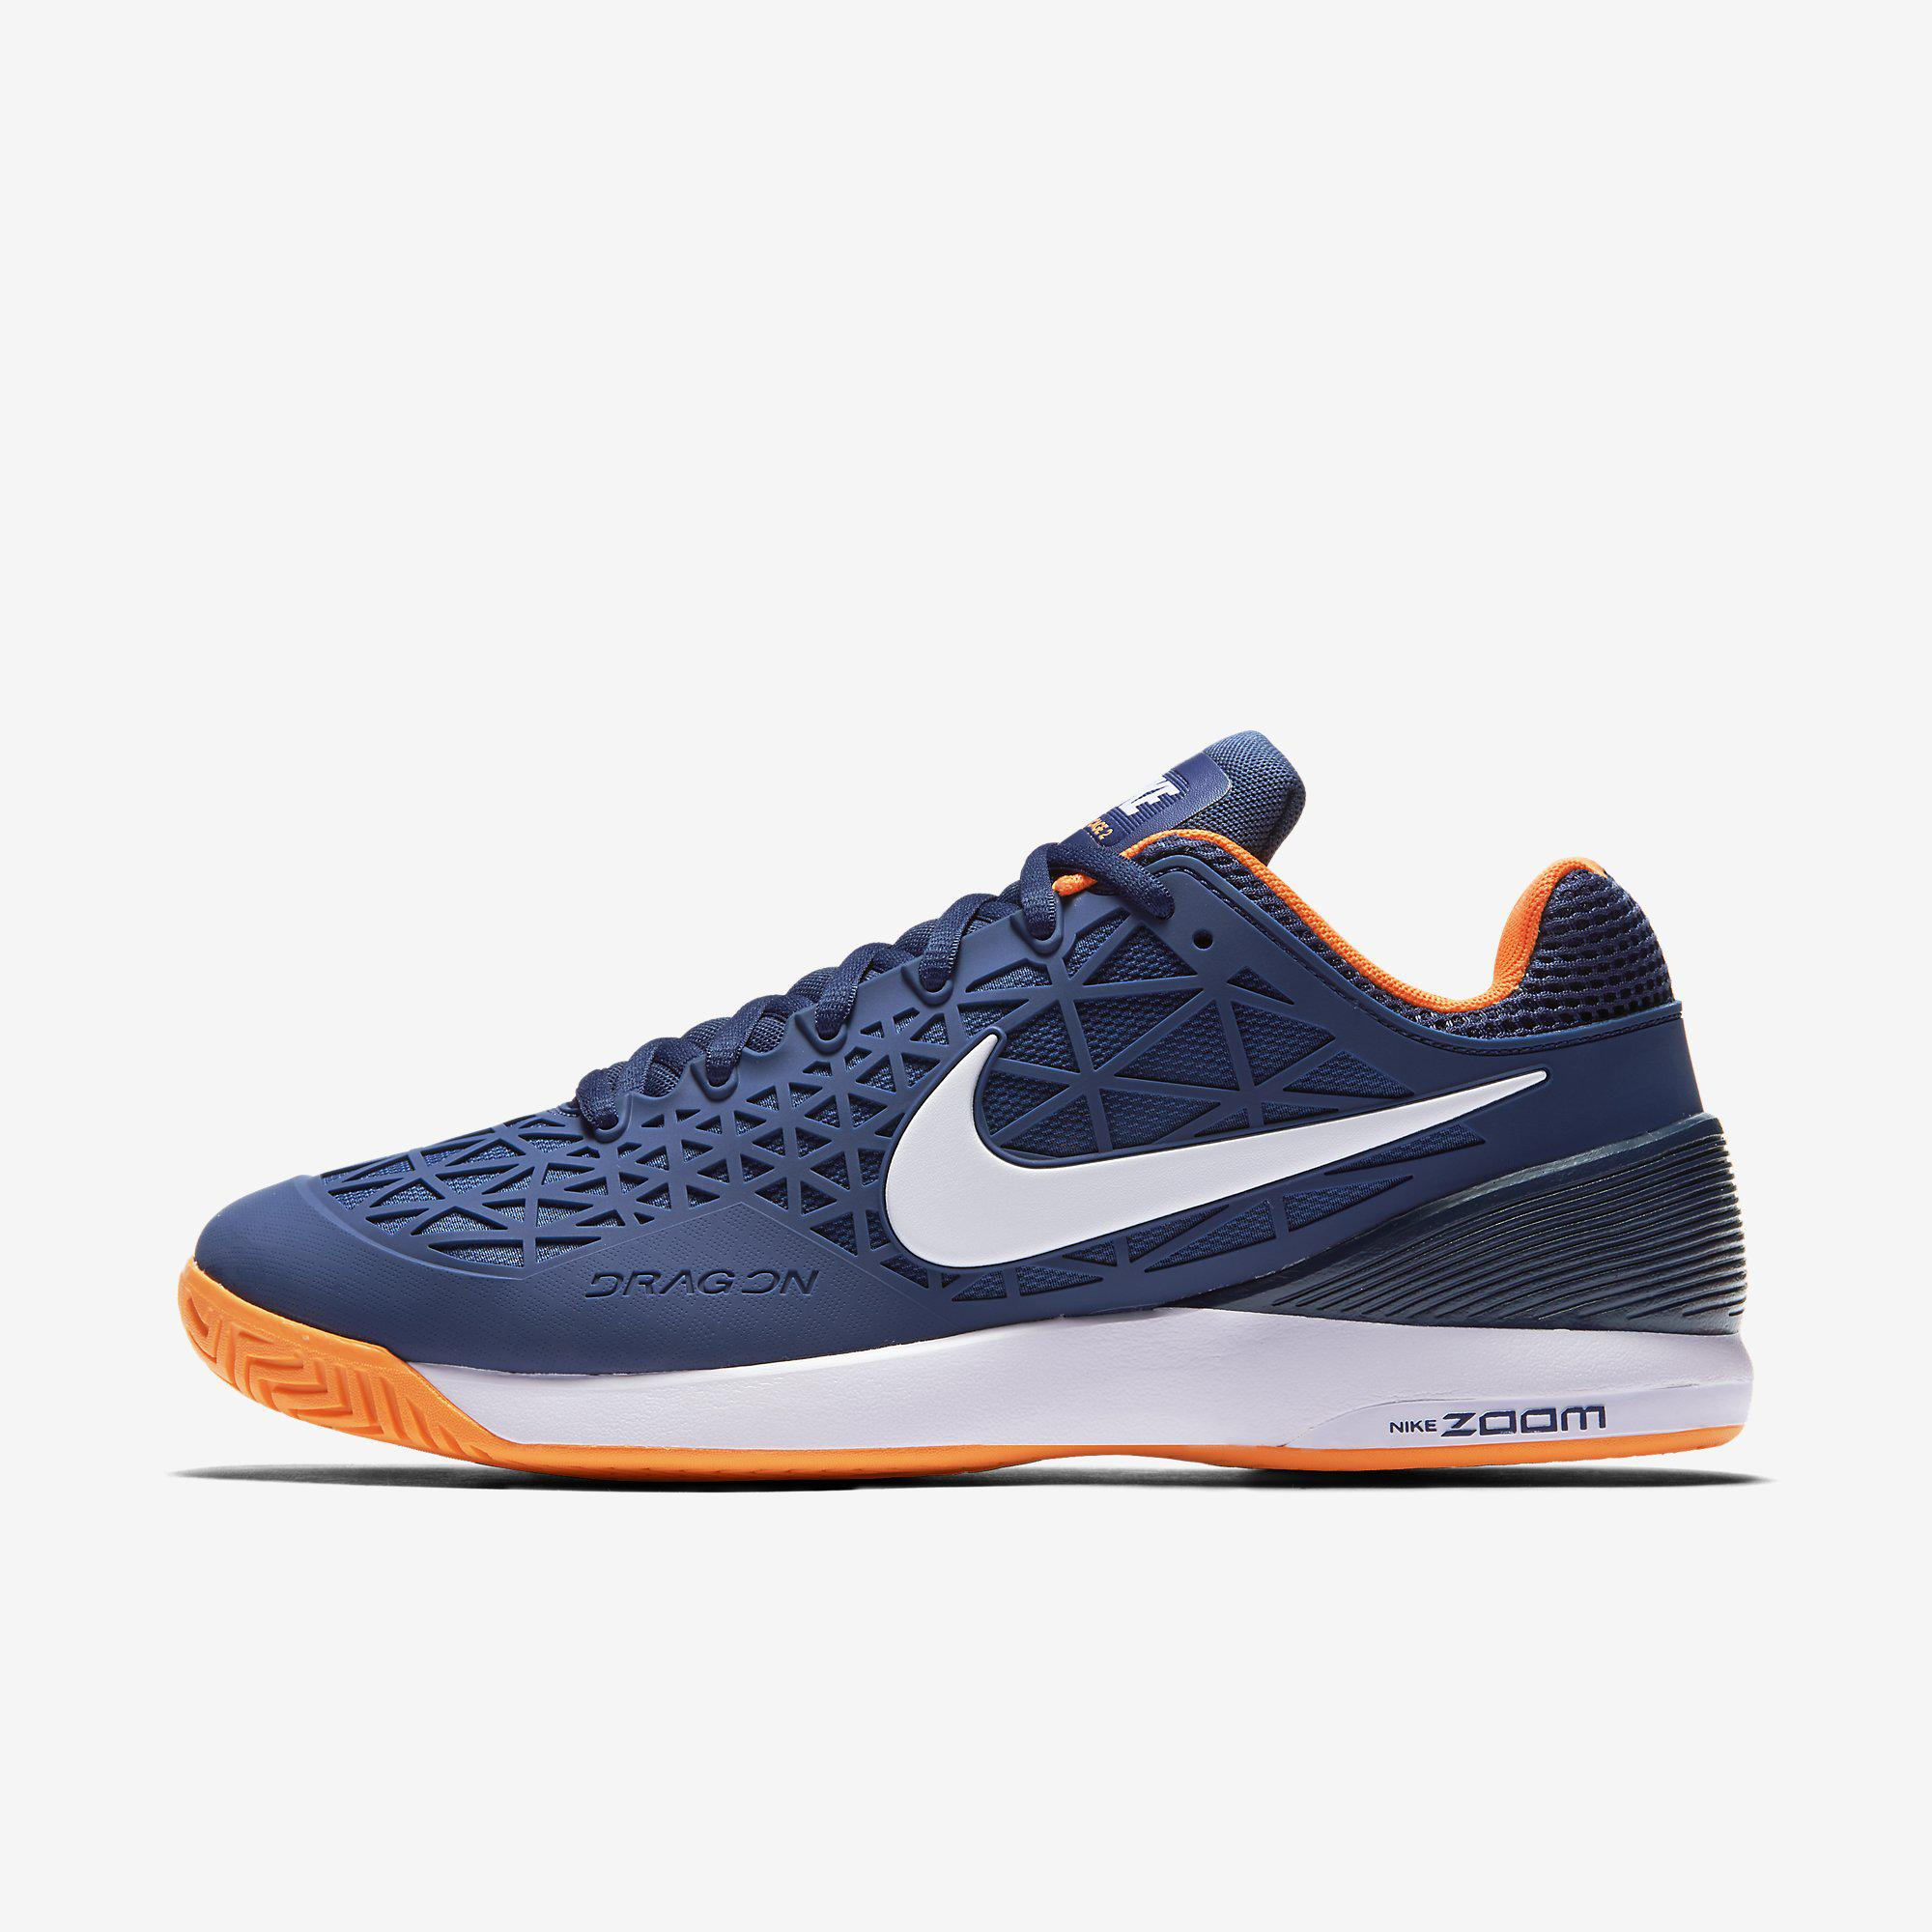 huge discount 3632c b185b Nike Mens Zoom Cage 2 Tennis Shoes - Blue Citrus - Tennisnuts.com